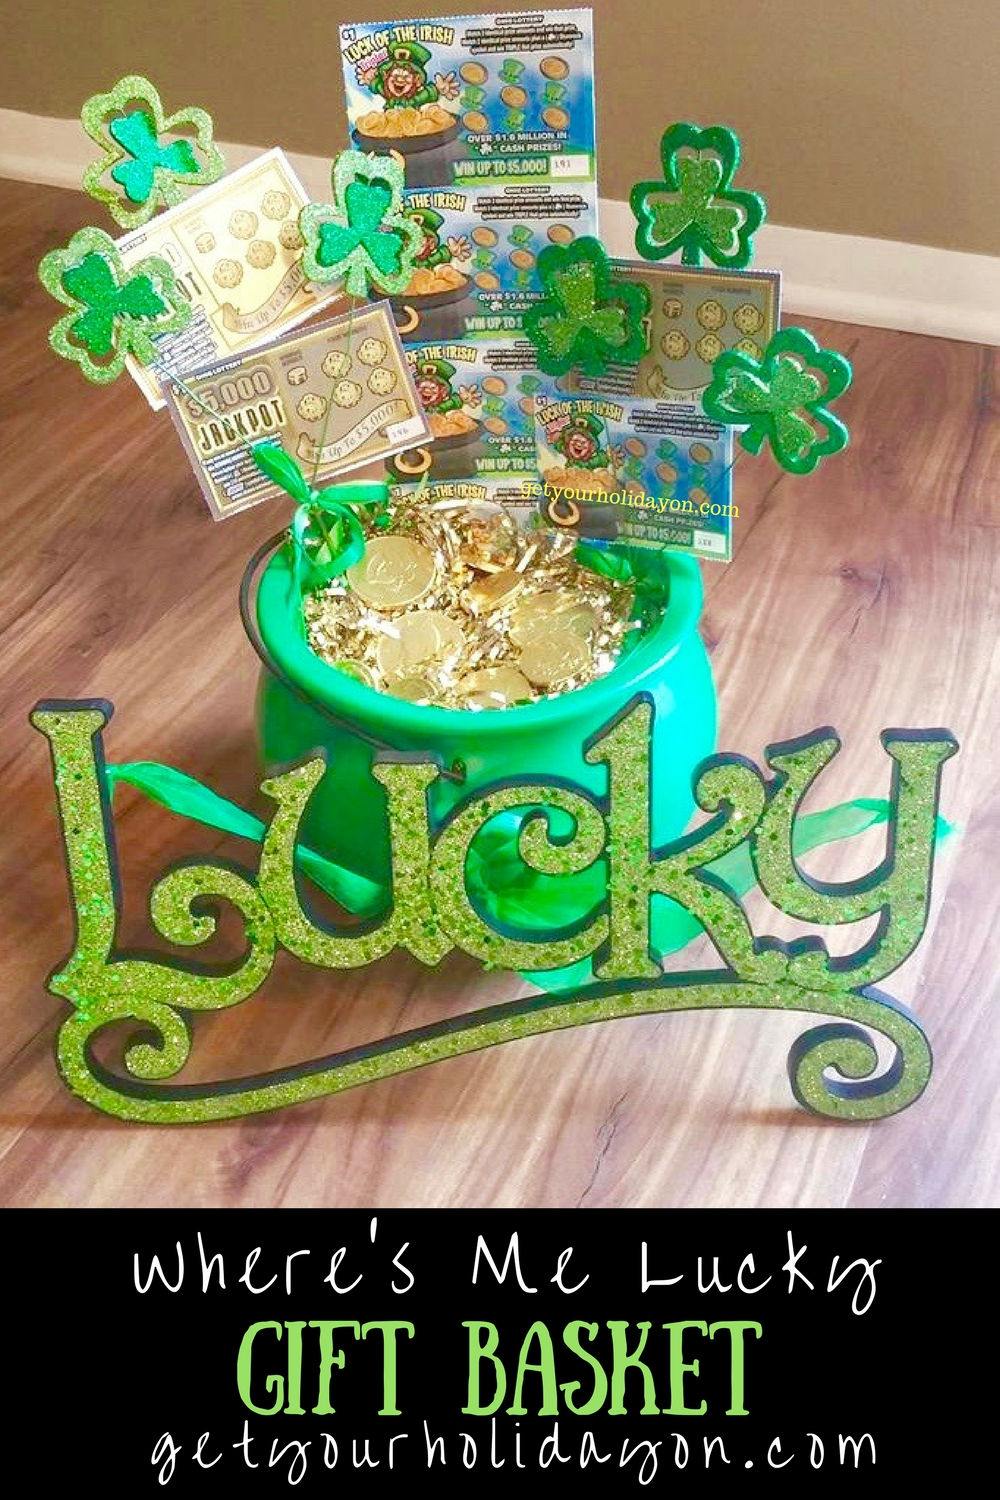 Where S Me Lucky St Patrick S Day Gift Basket Get Your